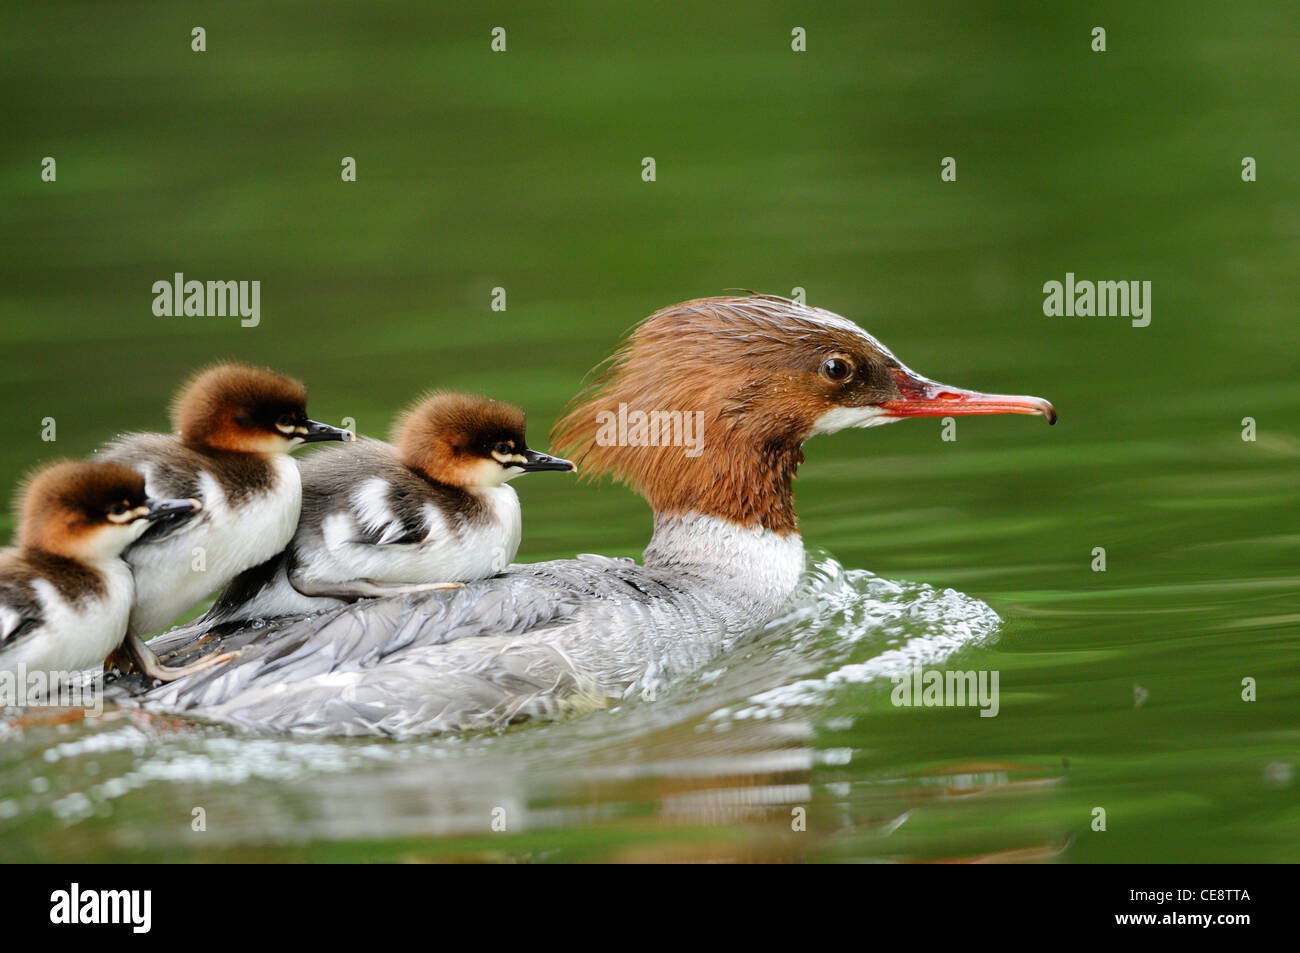 Mergus merganser chicks on back of mother - Stock Image